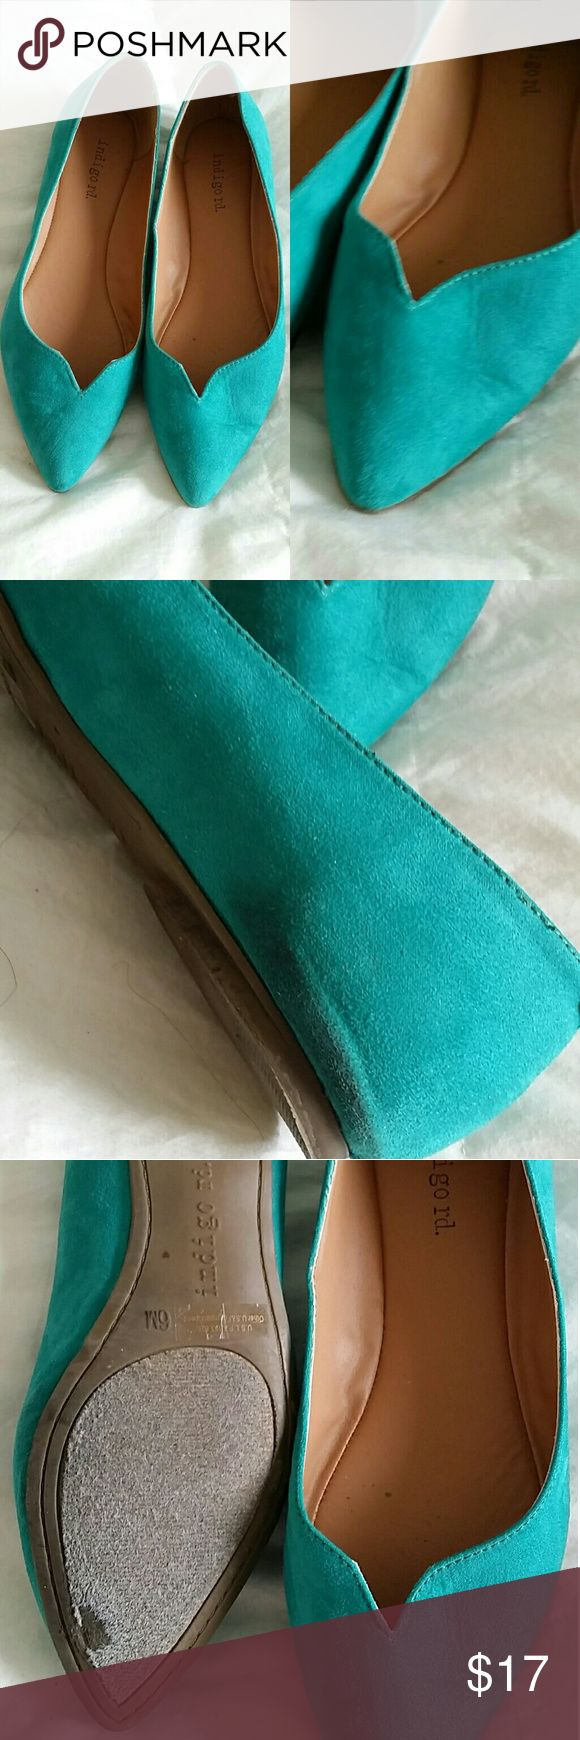 Teal Flats Teal flats.  Size 6.5 Worn a few times. Shoes Flats & Loafers